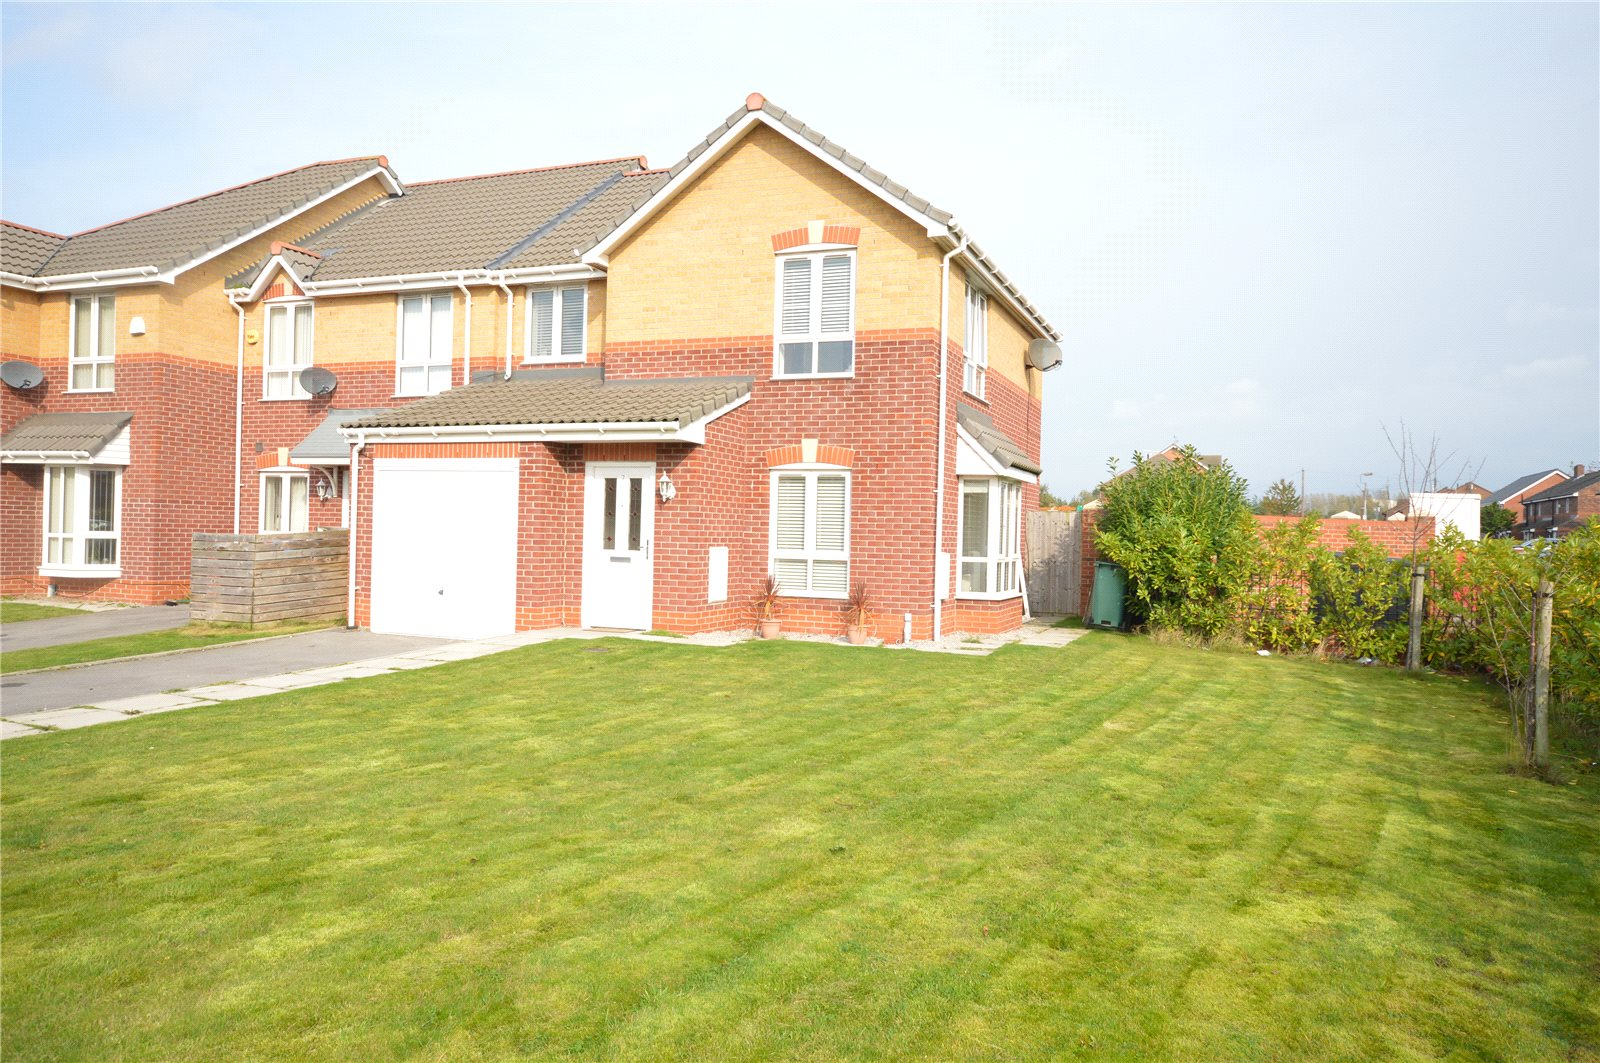 3 Bedrooms End Of Terrace House for sale in Carpathia Close, Garston, Liverpool, L19